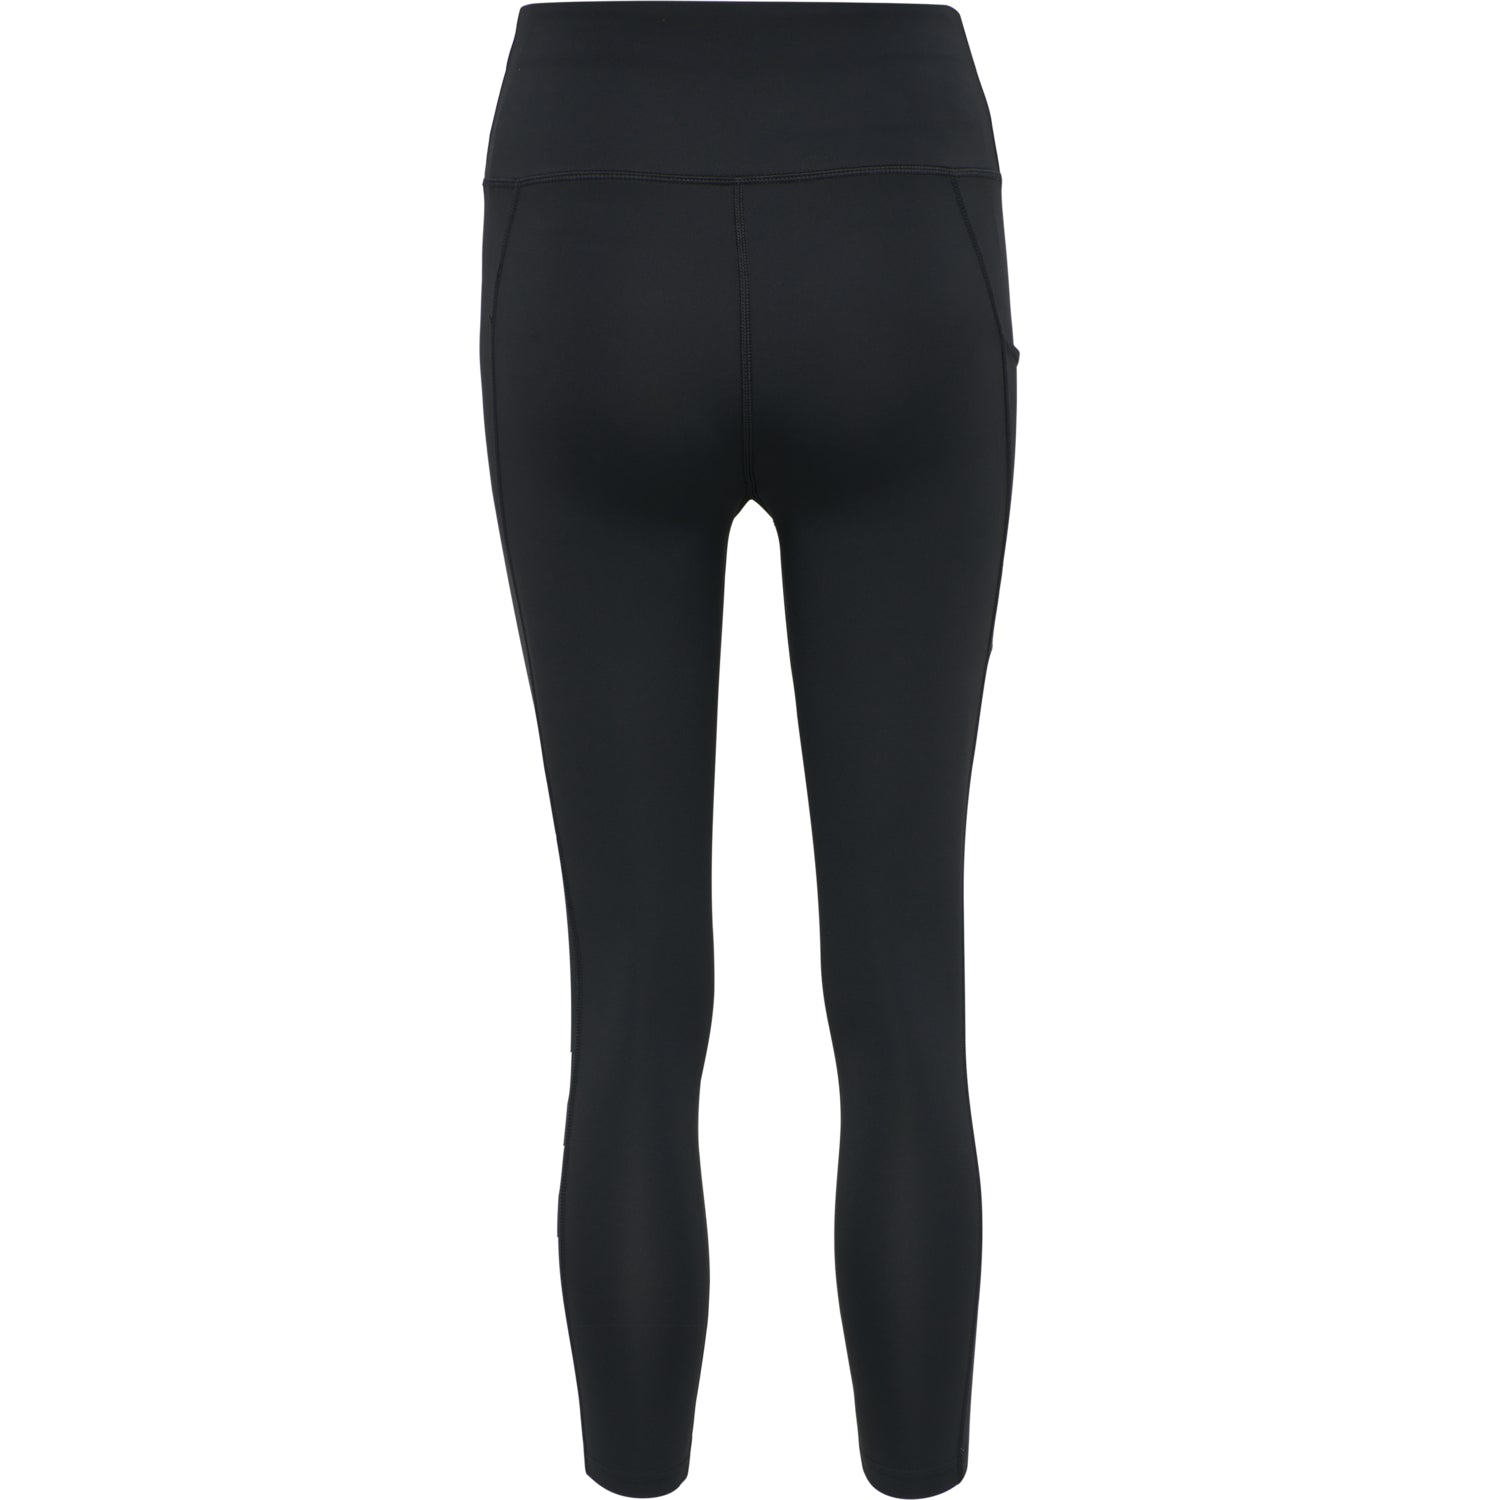 HUMMEL - MACI 7/8 TIGHTS BLACK